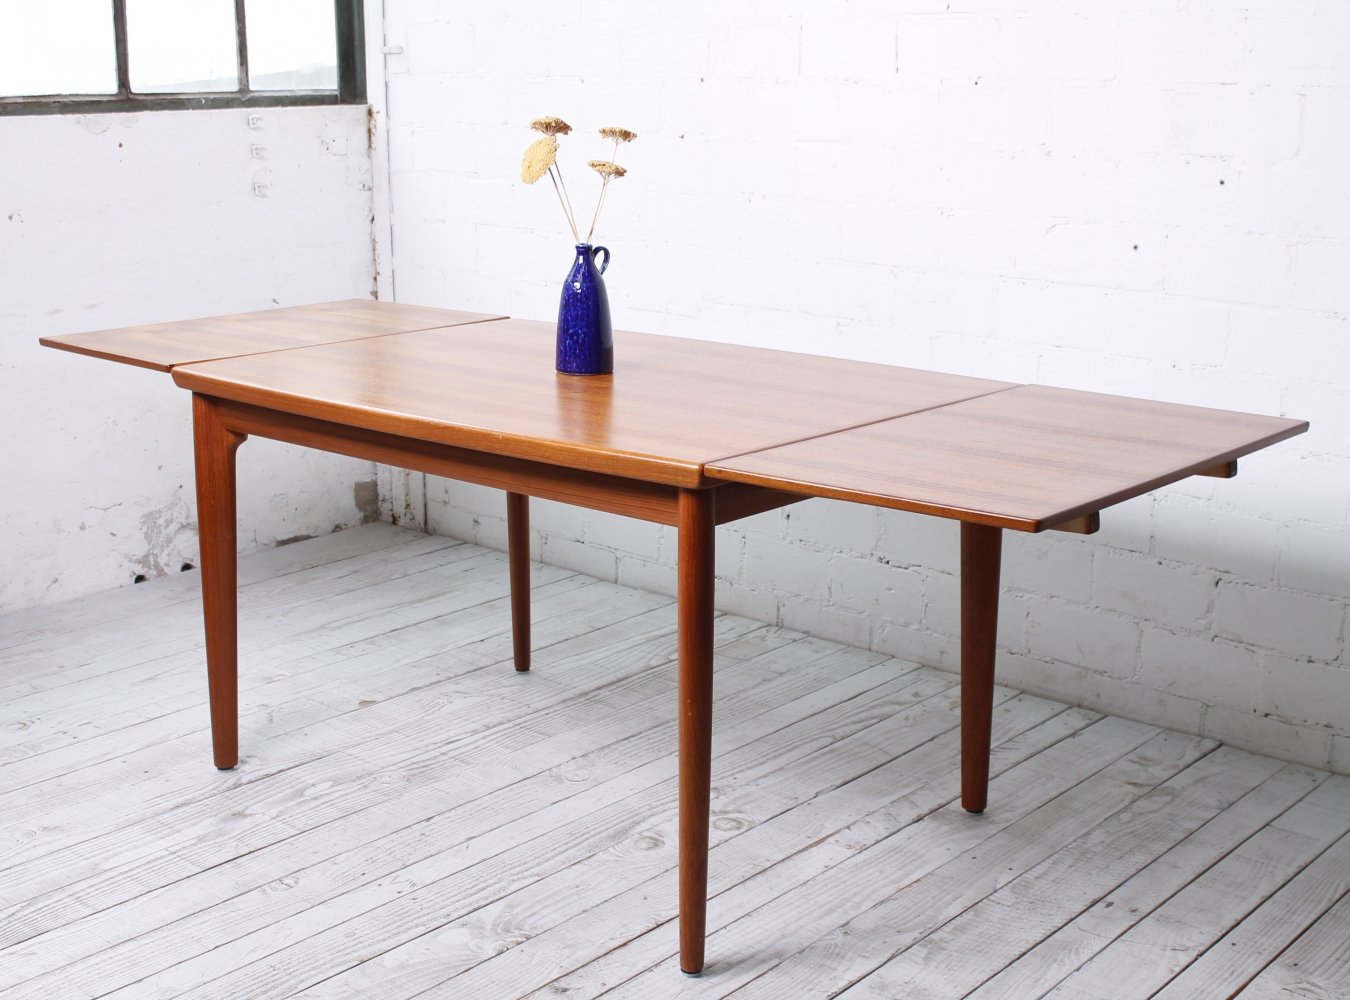 Retractable Teak Dining Table by Grete Jalk for Glostrup, 1960s